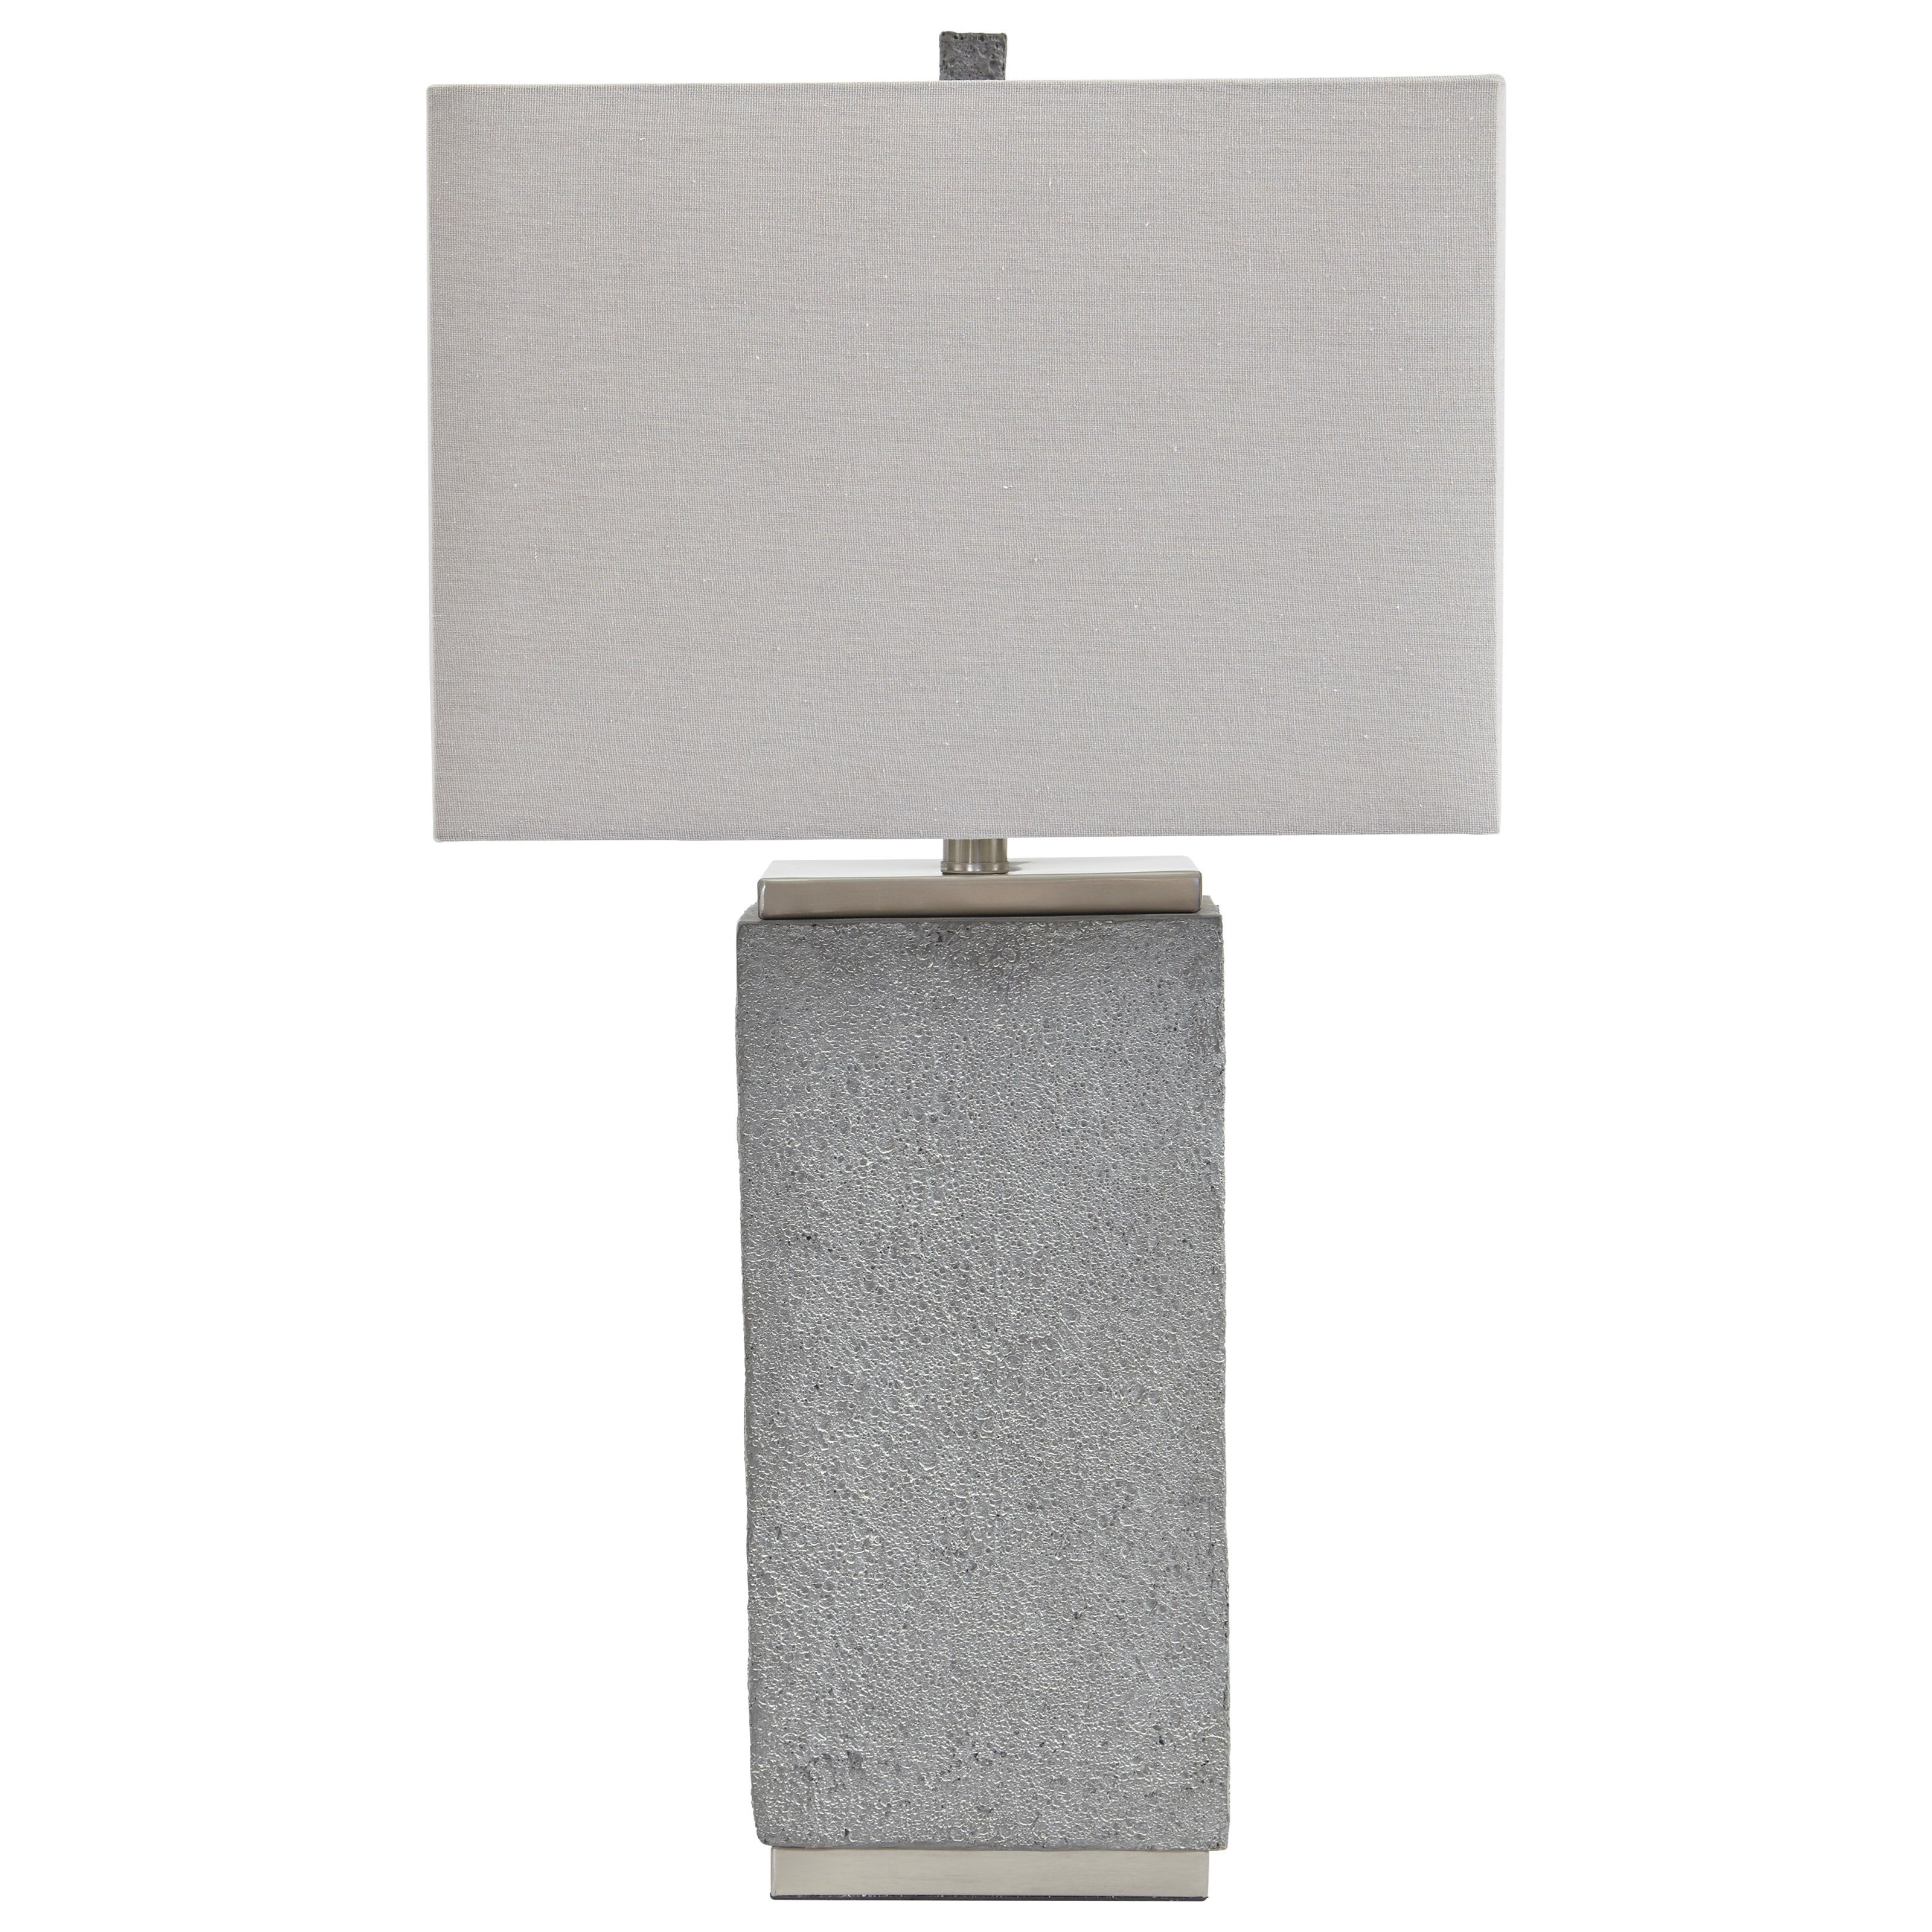 Lamps - Contemporary Set of 2 Amergin Faux Concrete Table Lamps by Signature Design by Ashley at Northeast Factory Direct